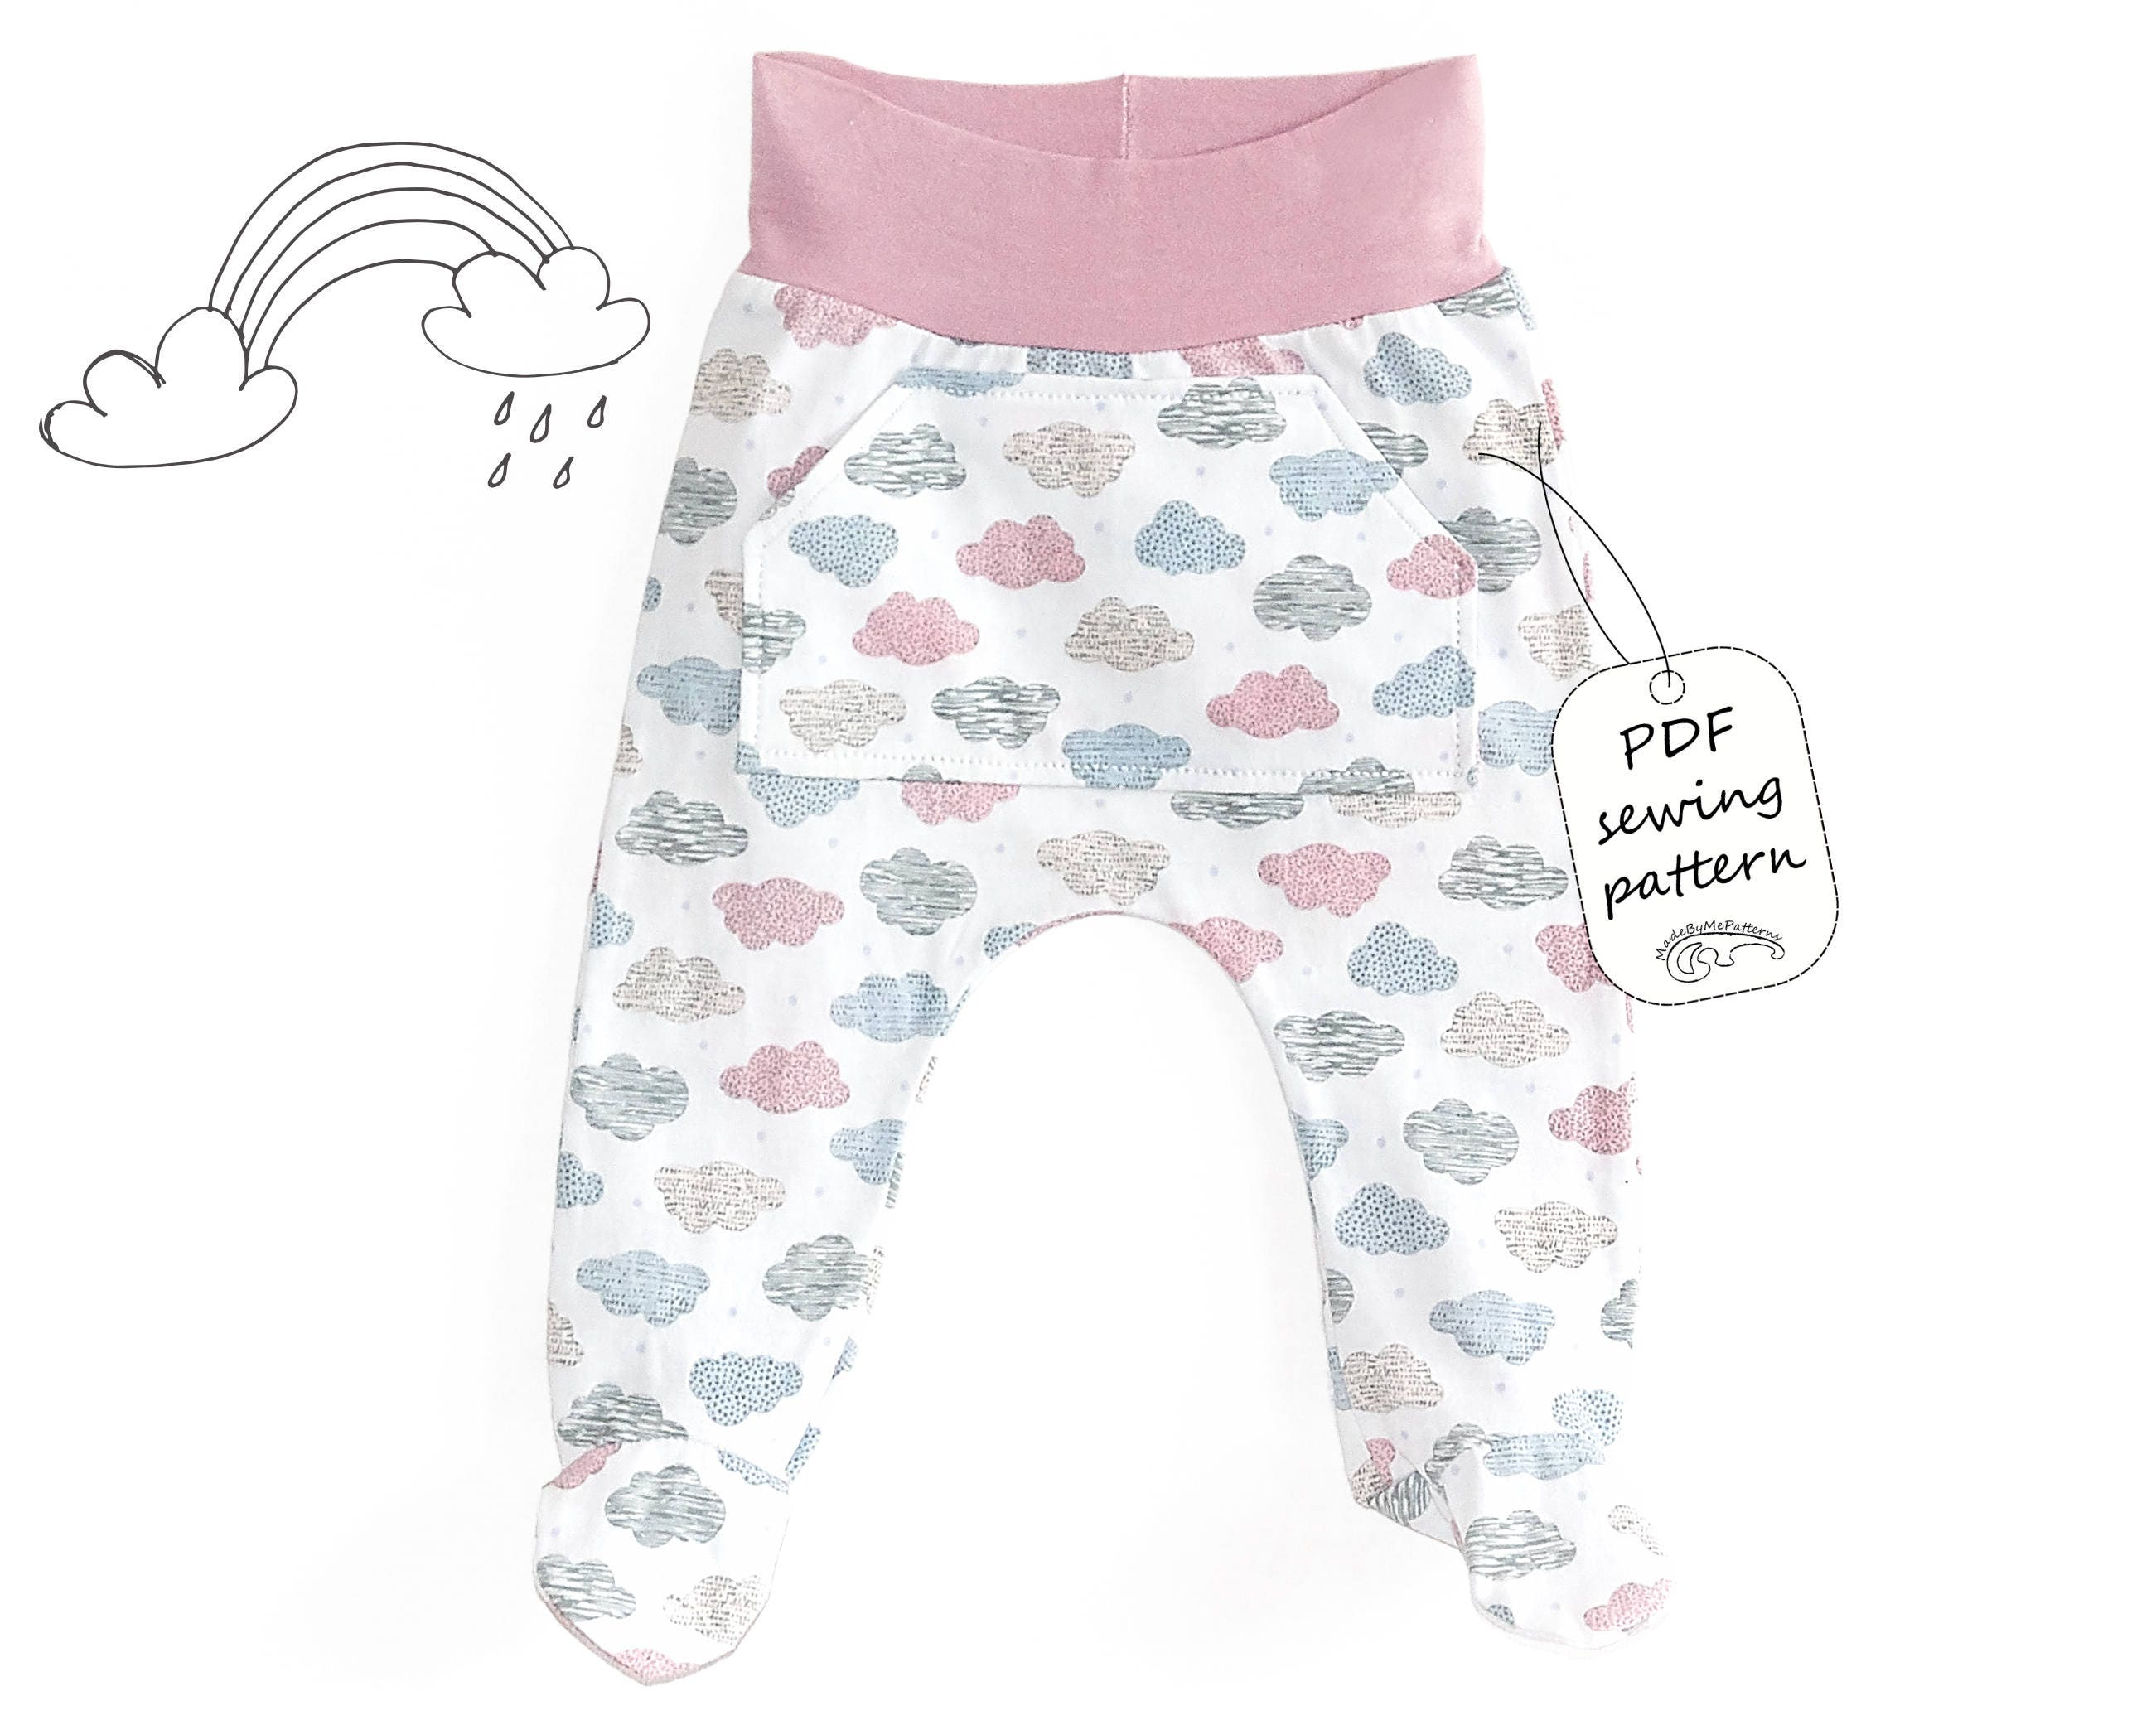 Baby footed pants pattern PDF, baby sewing patterns pdf, baby sewing ...